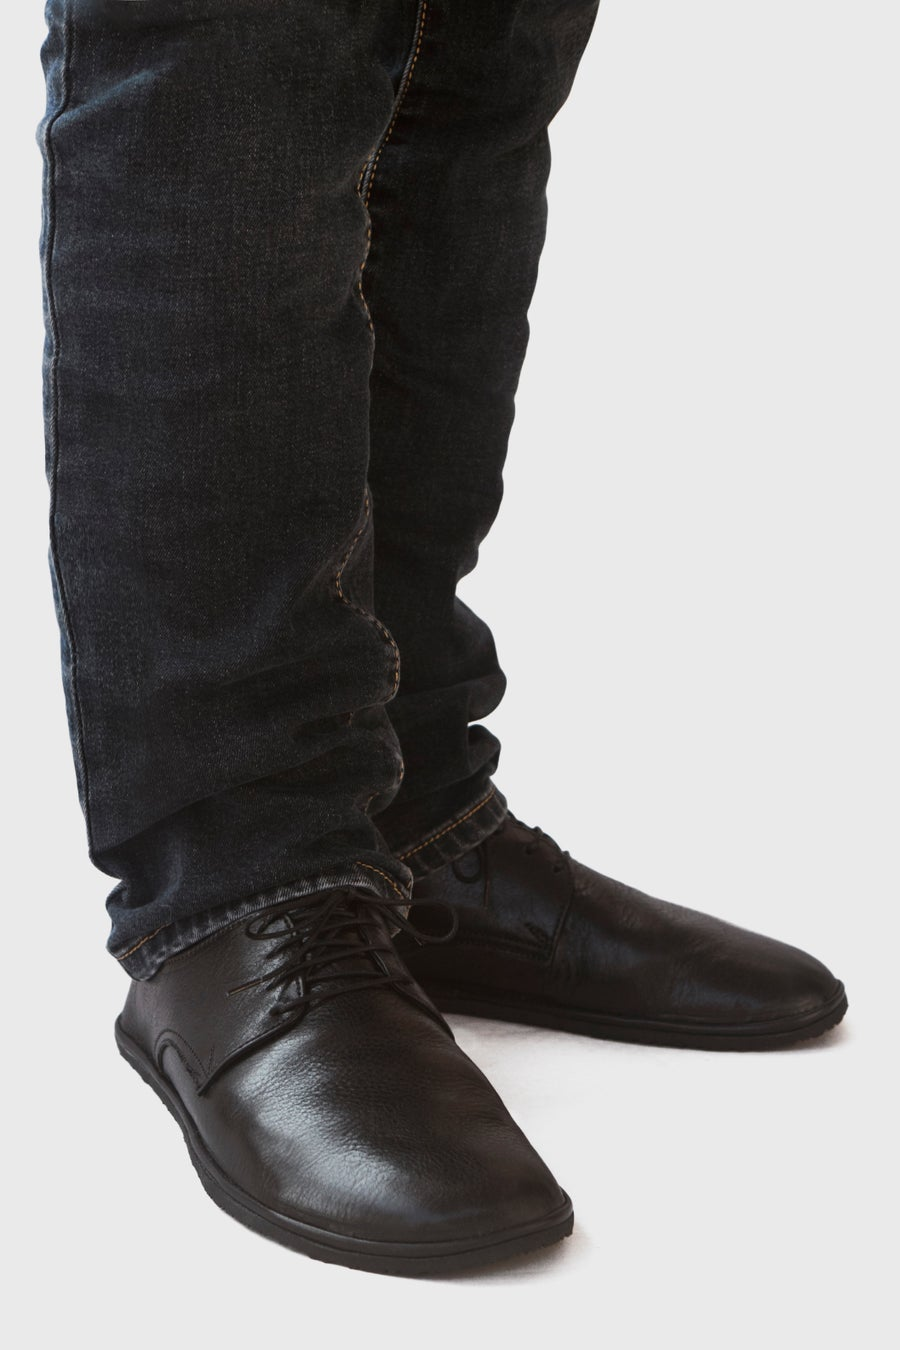 Image of Plain Toe Derby in Veg-tanned Lustrous Black